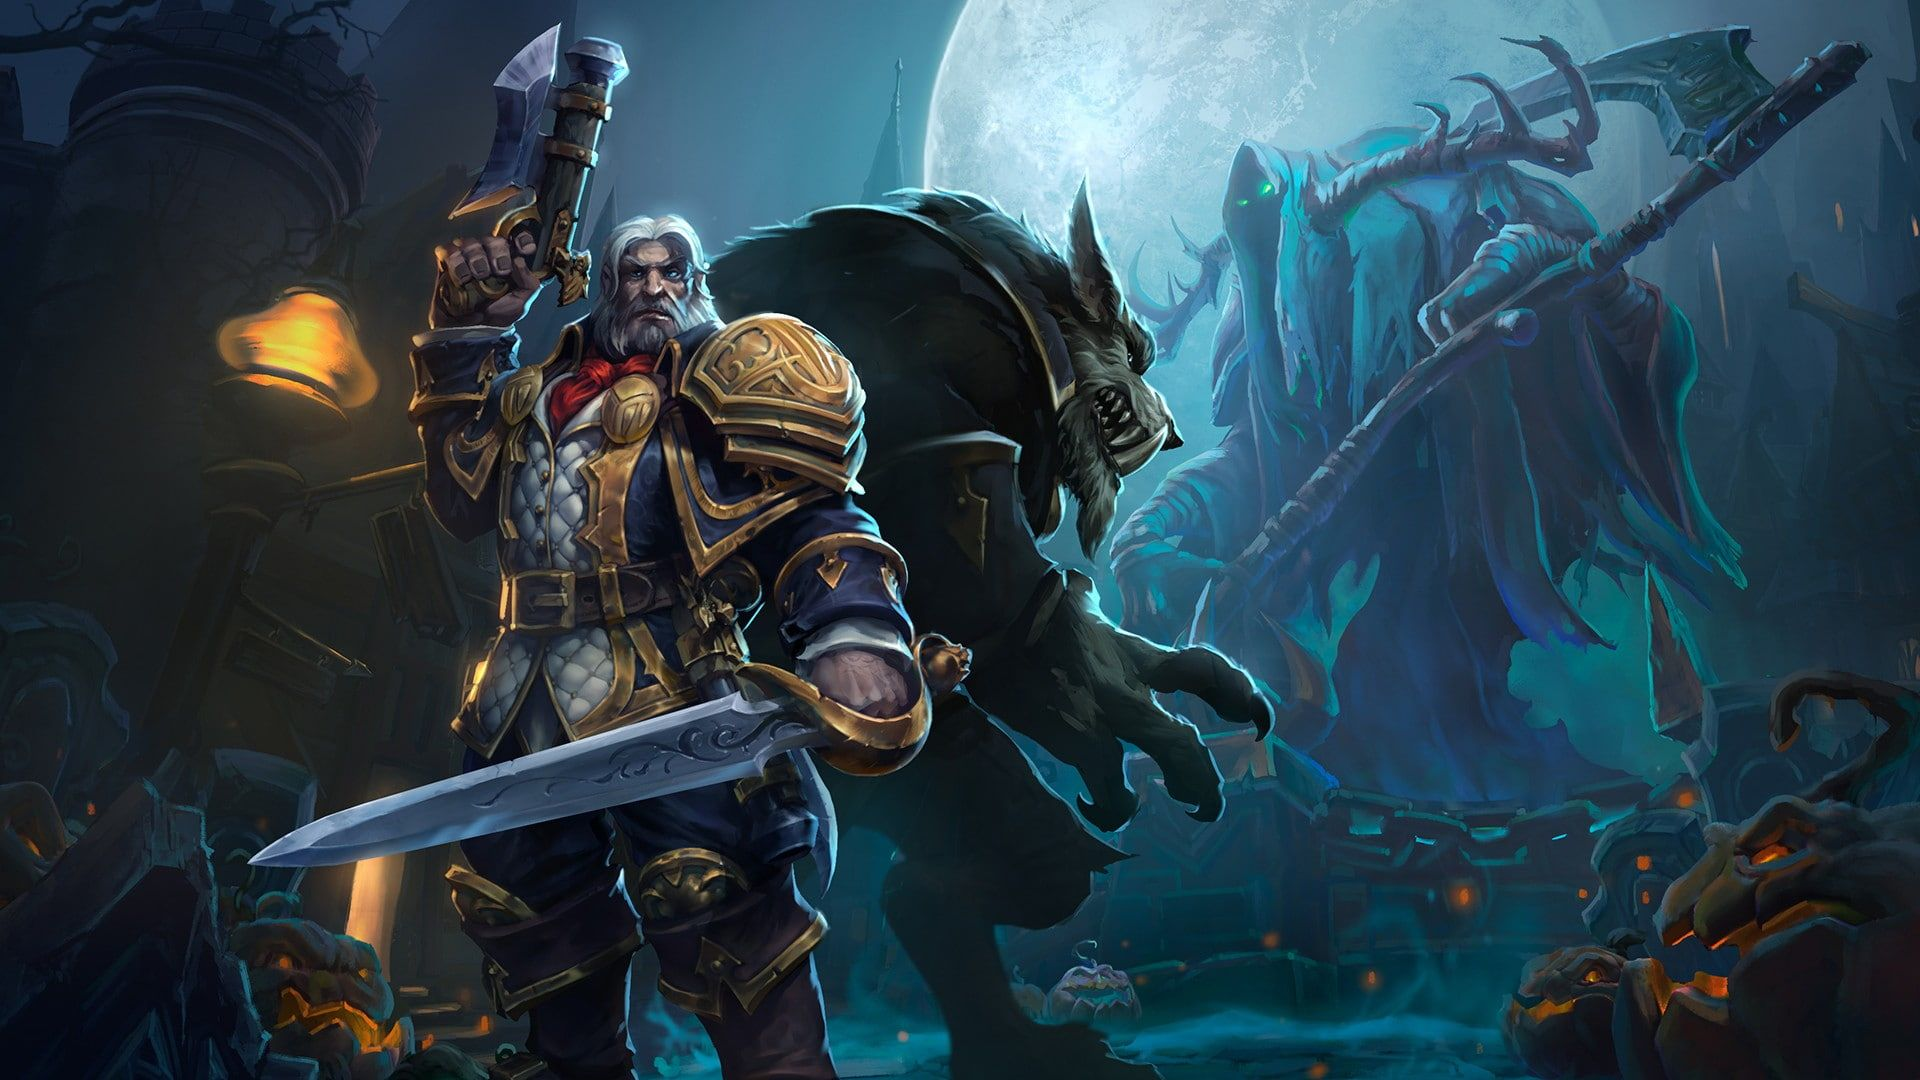 Video Game Heroes Of The Storm Blizzard Entertainment Genn